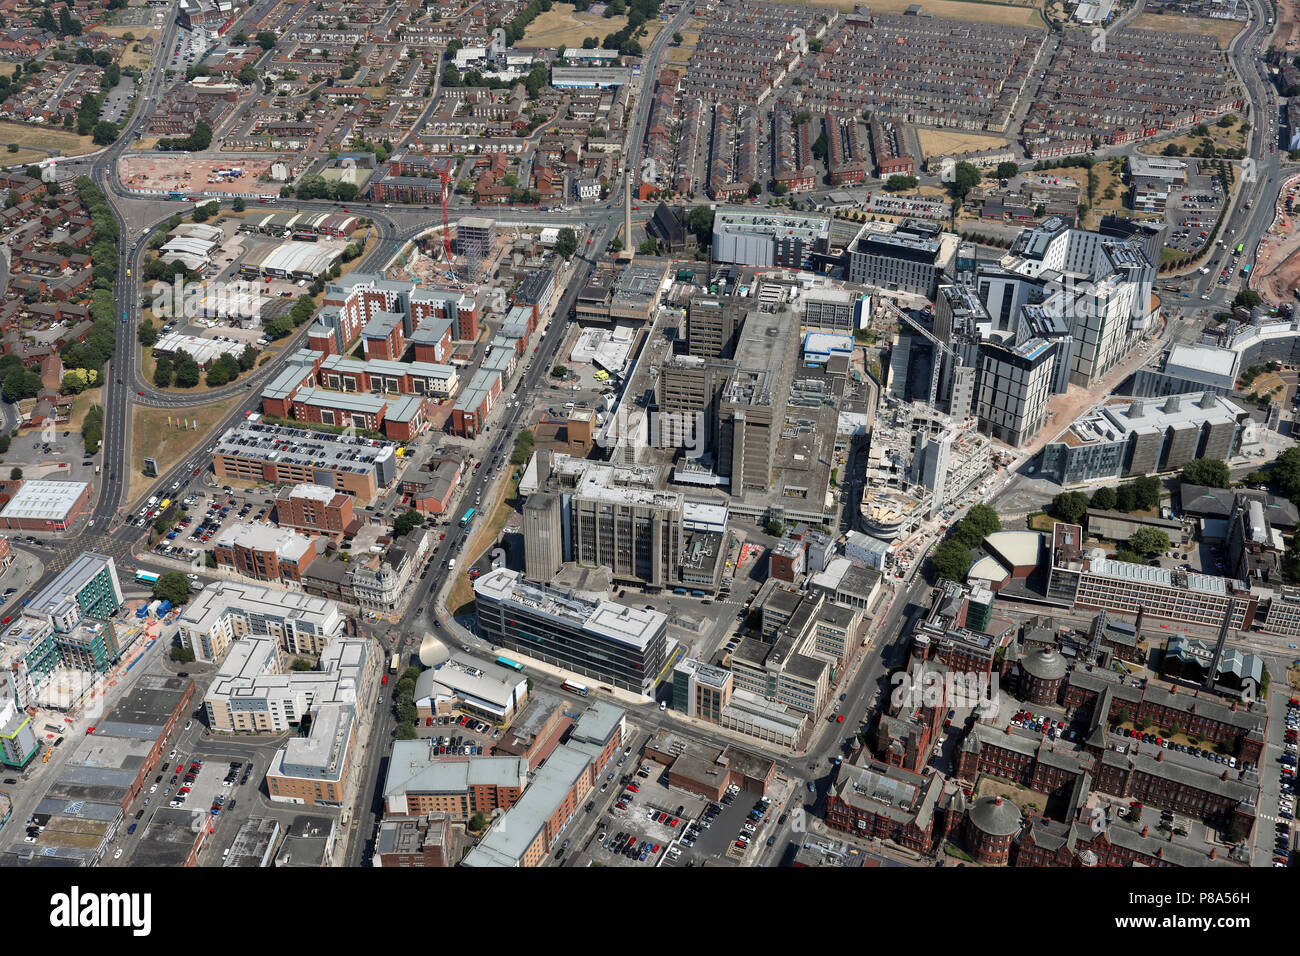 aerial view of The Royal Liverpool University Hospital - Stock Image